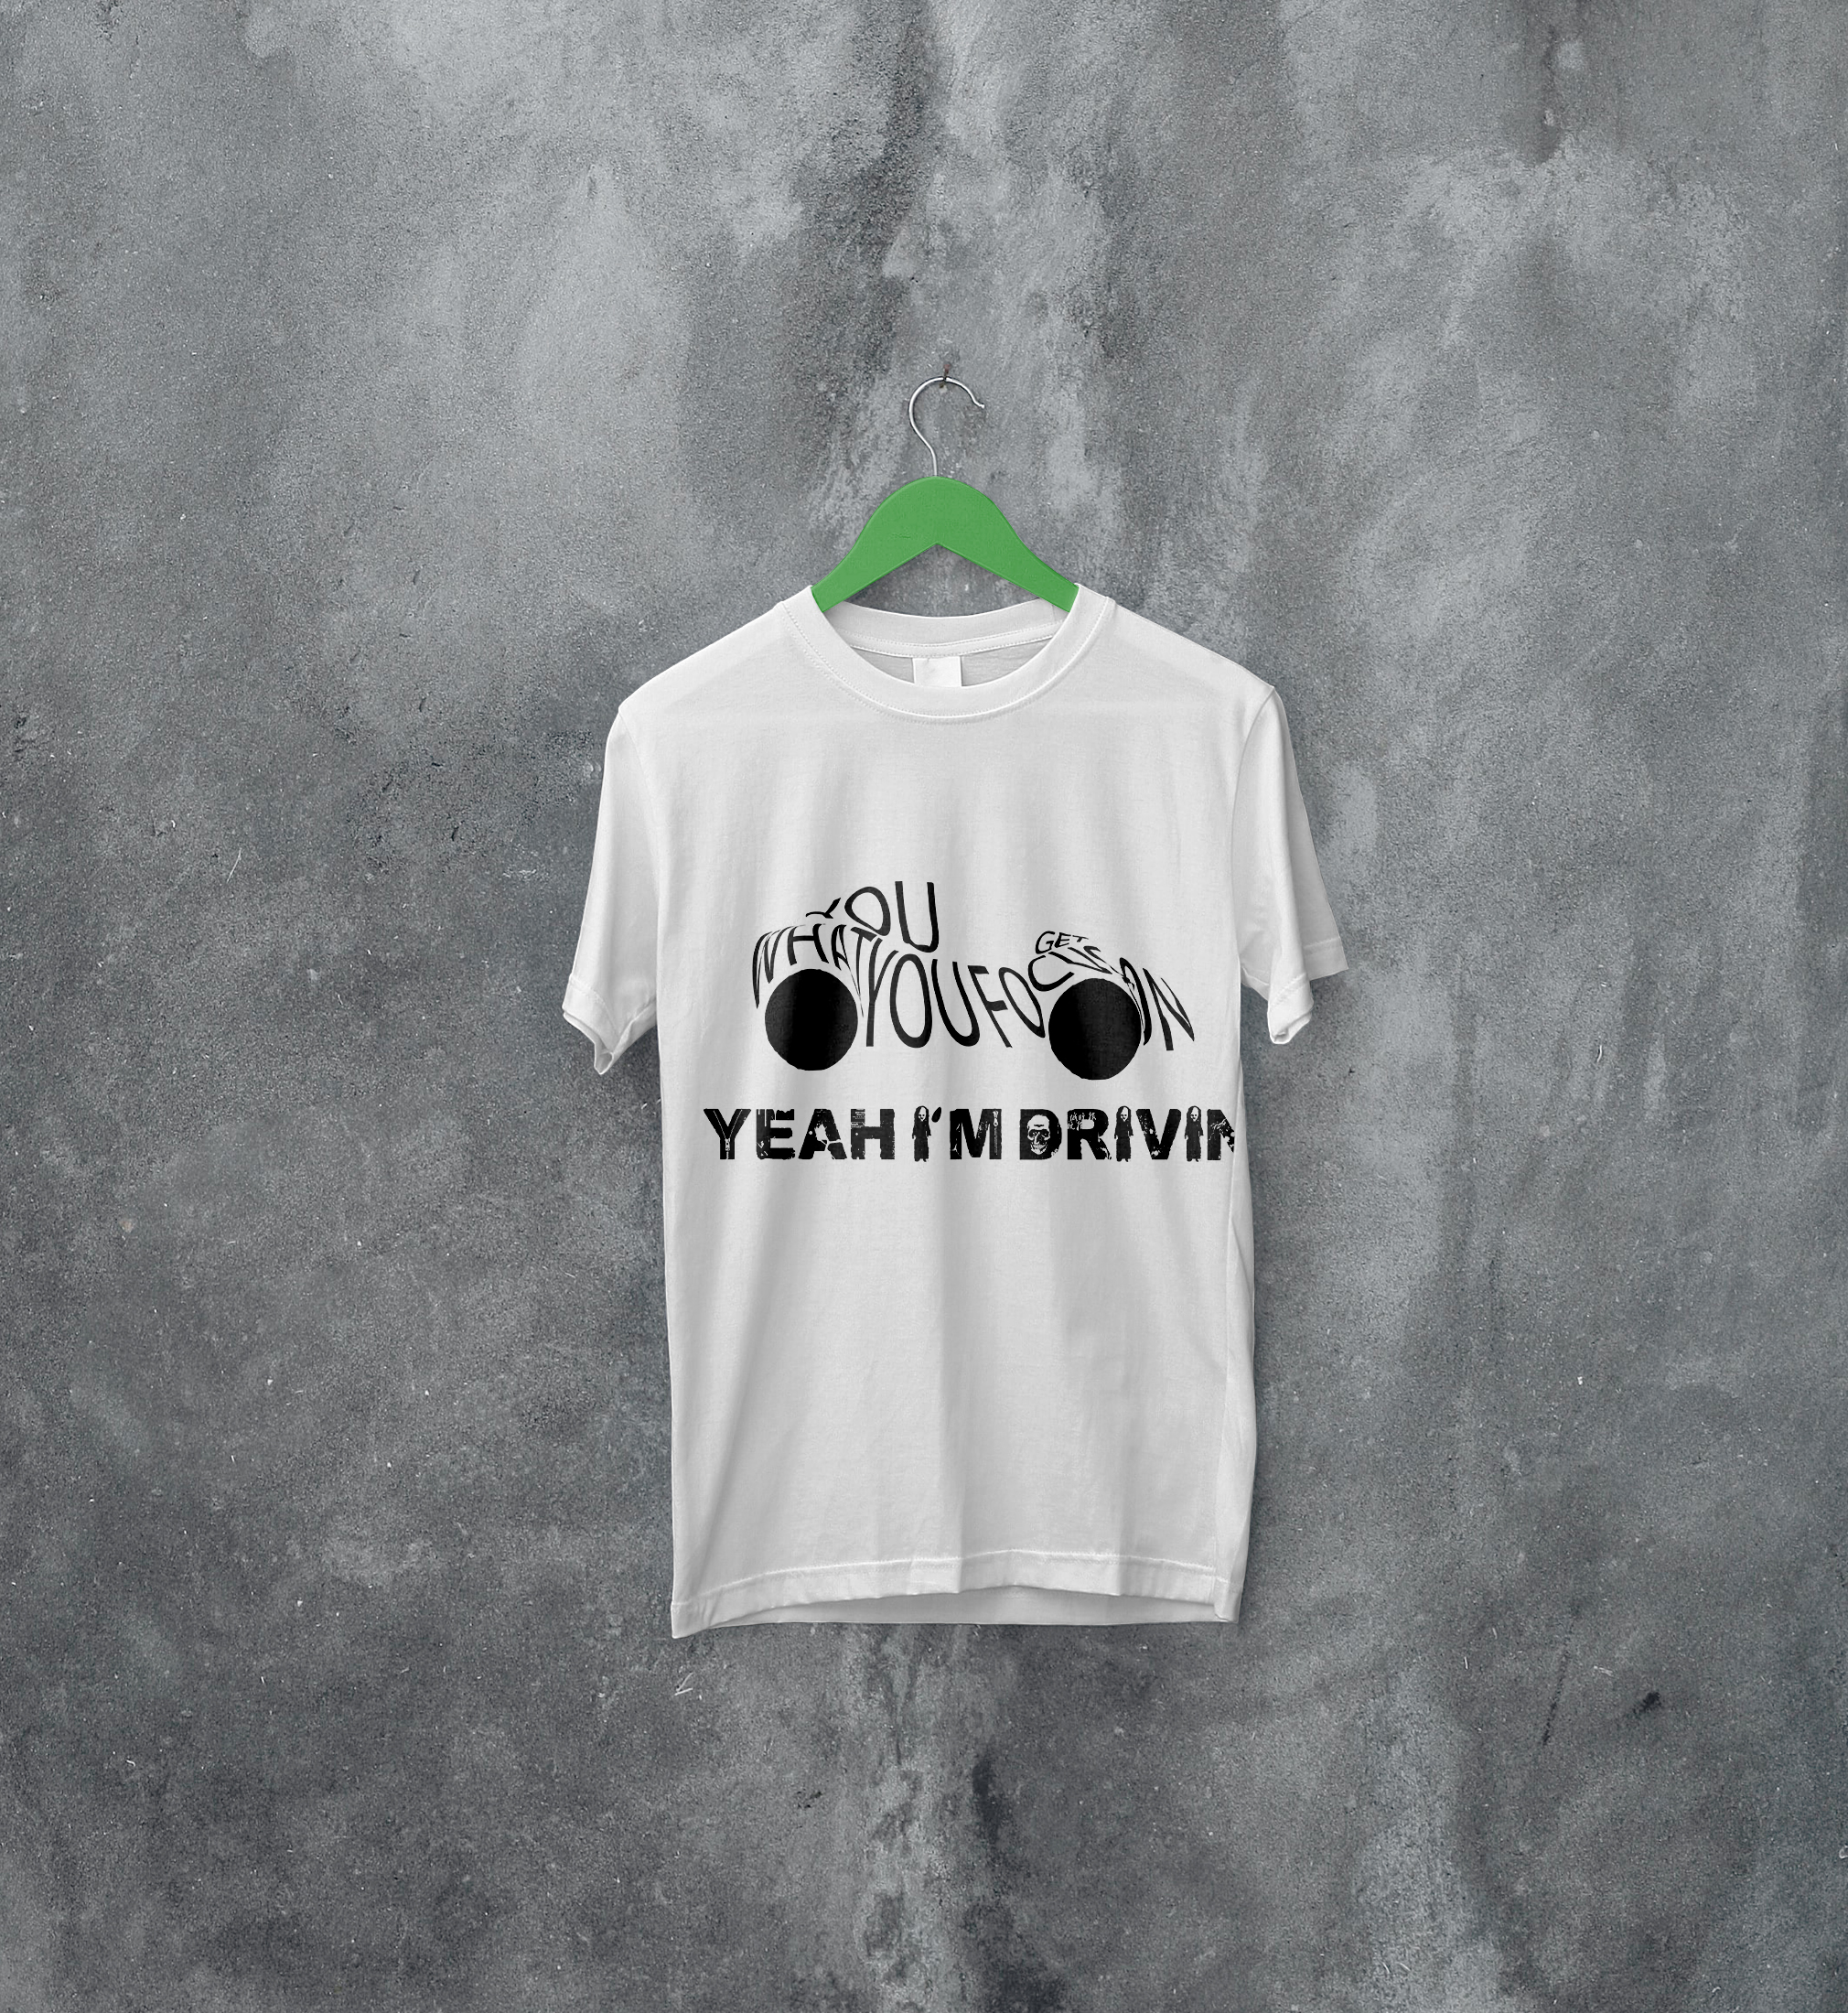 I will create an awesome graphic and typography tshirt design